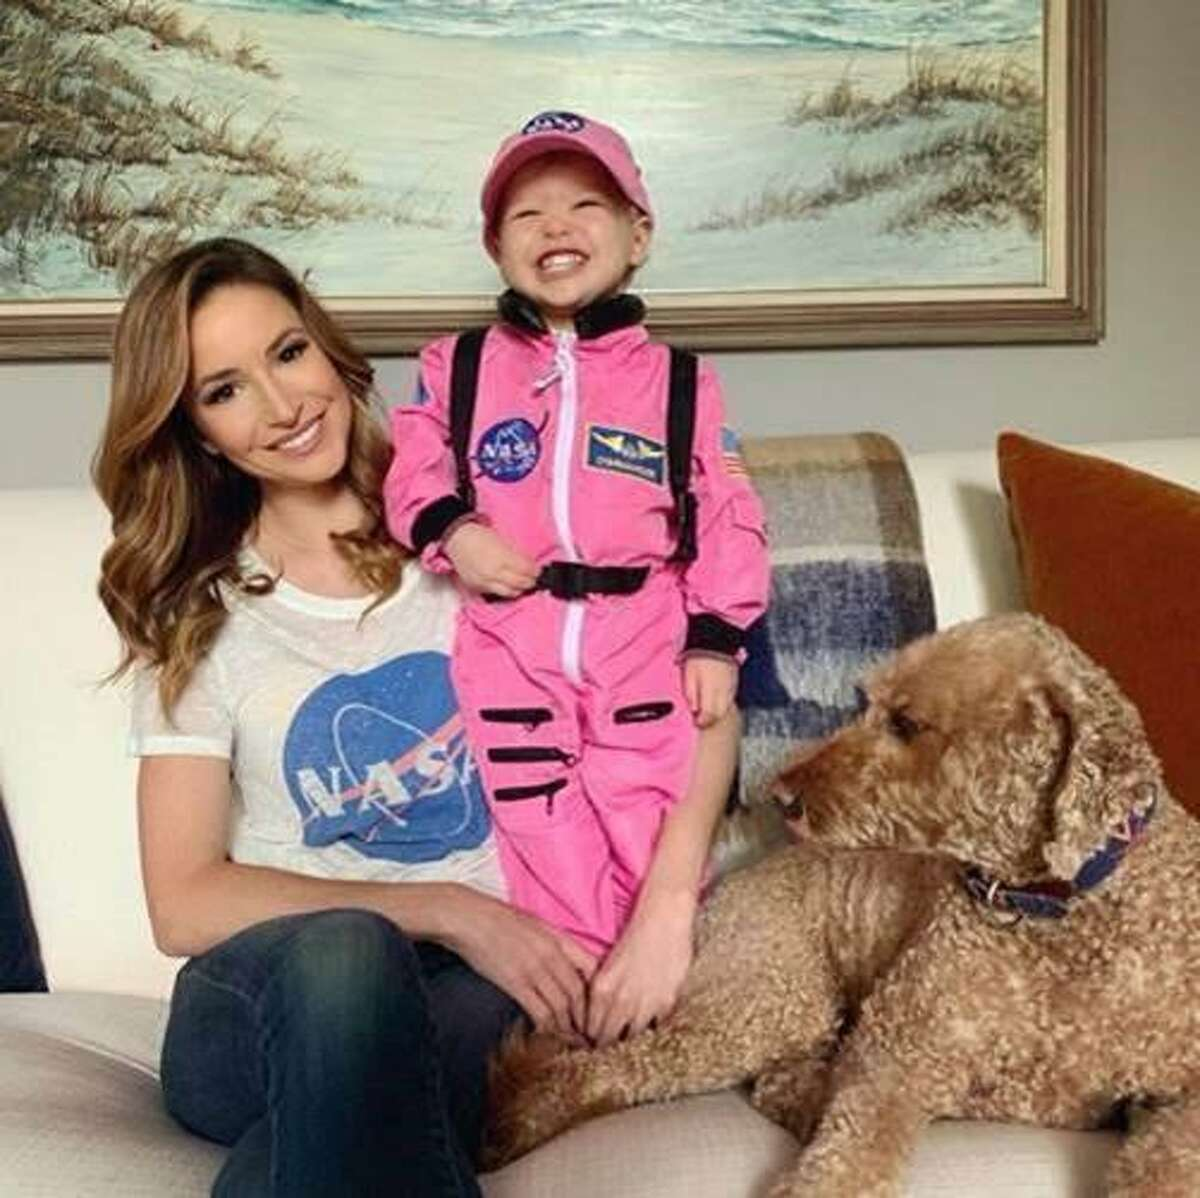 Fox News correspondent Kristin Fisher doesn't have much time for social media between mothering her daughter and covering the White House.